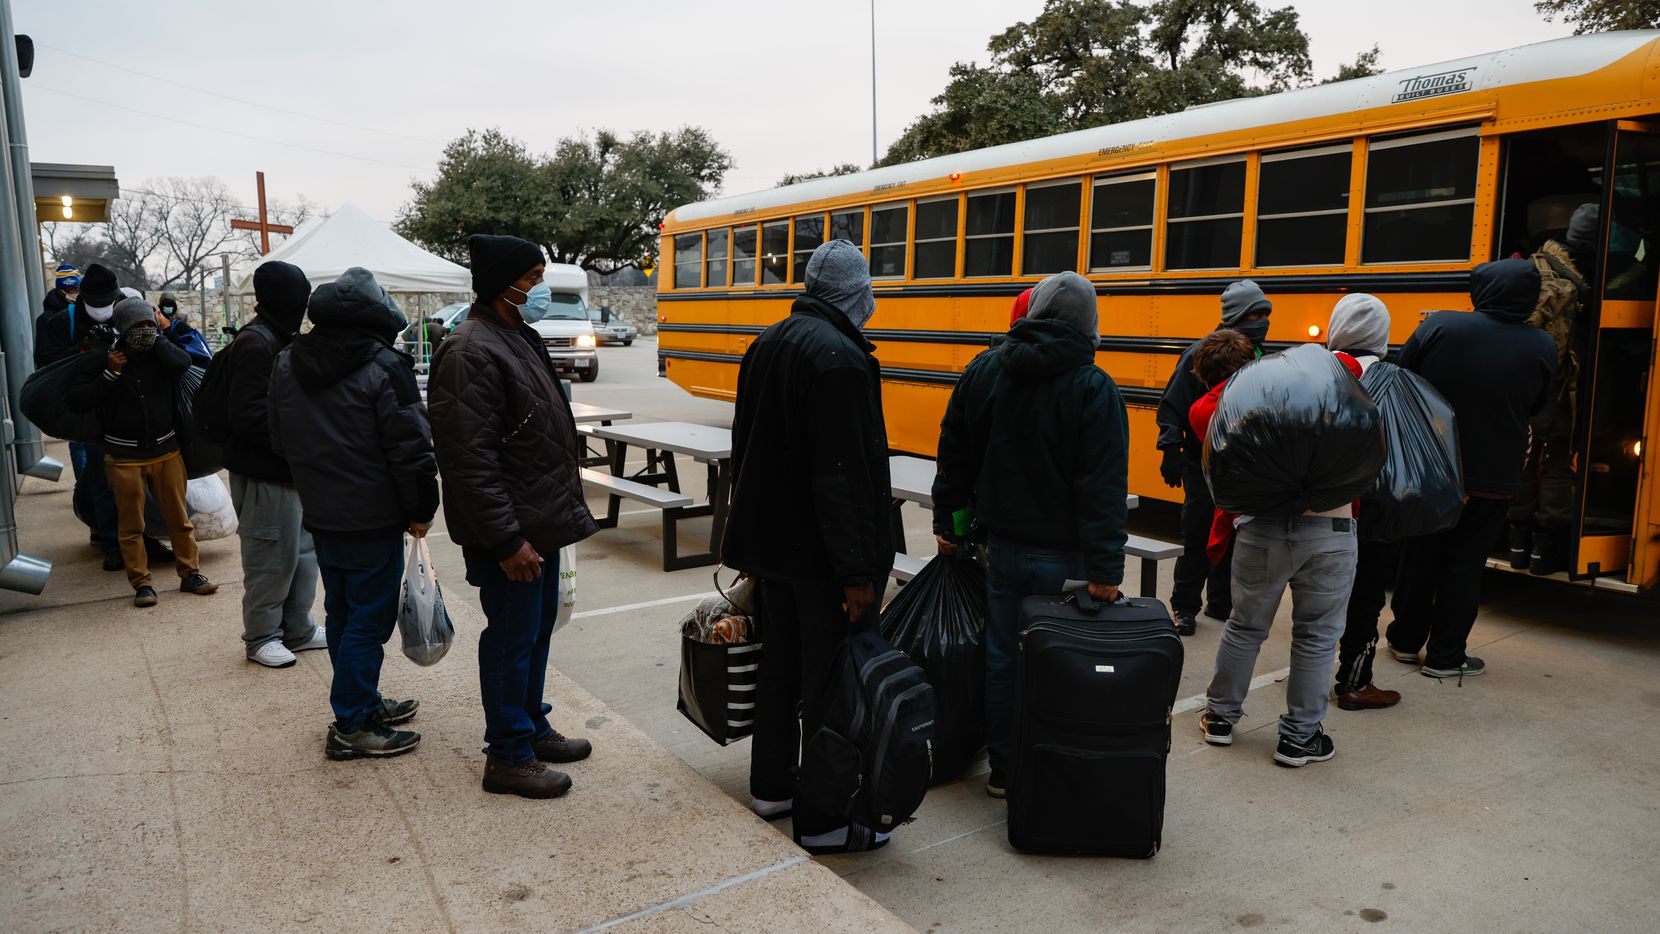 People load into a bus at OurCalling as they head to Kay Bailey Hutchison Convention Center in Dallas on Friday, Feb. 12, 2021. The City of Dallas opened the Convention Center to accommodate homeless individuals during the forecasted cold weather. (Juan Figueroa/ The Dallas Morning News)